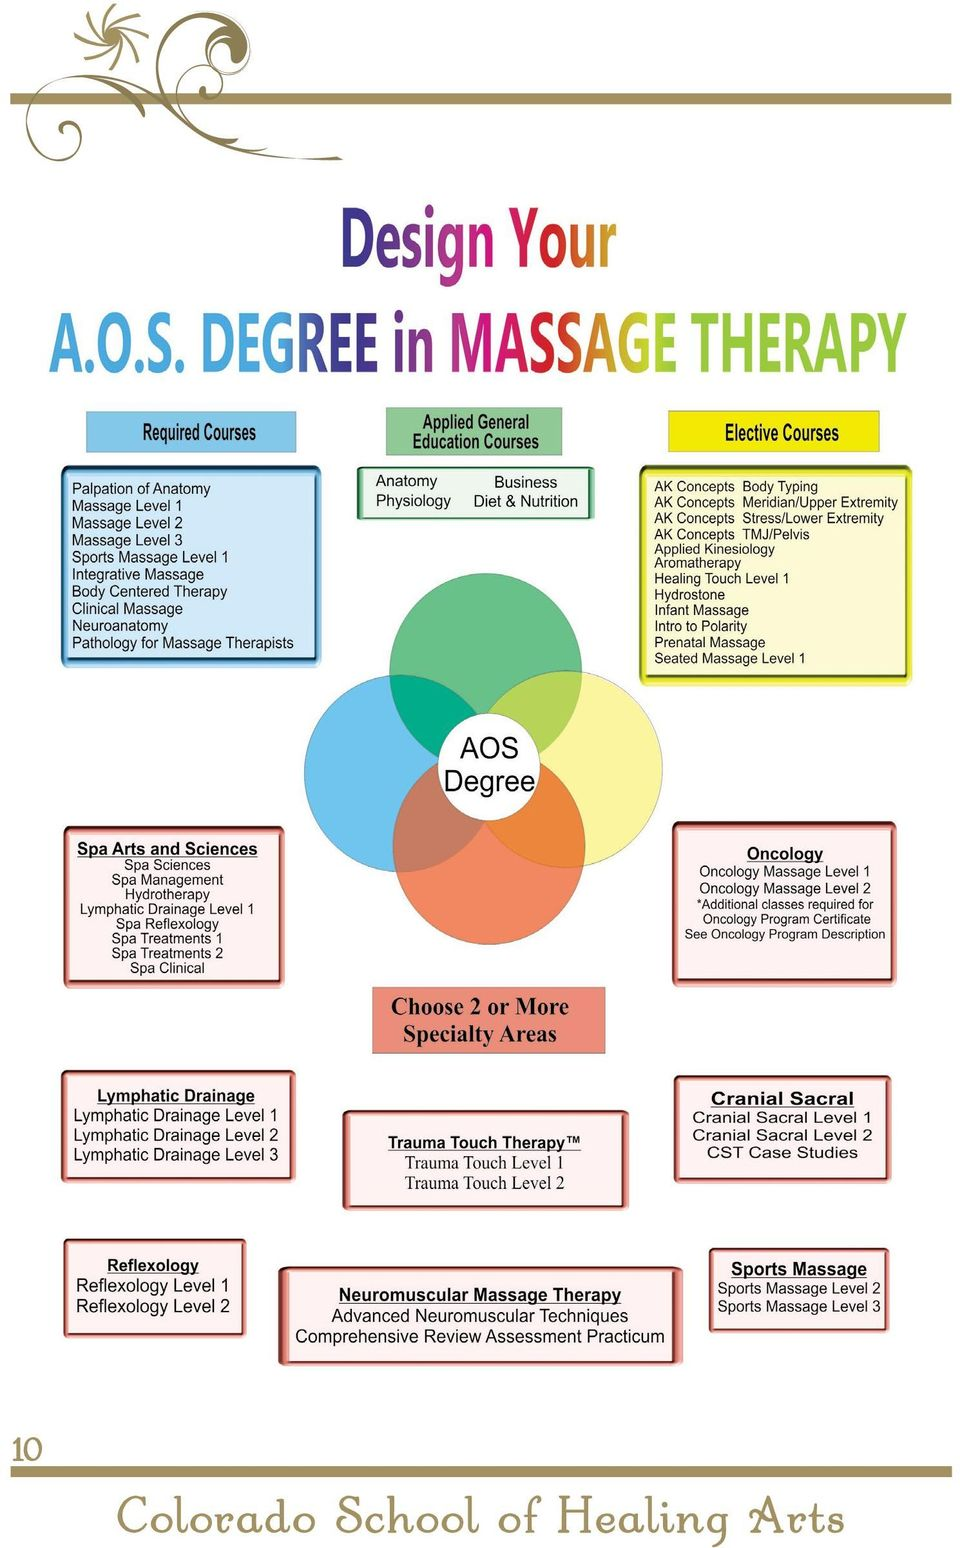 Colorado School of Healing Arts  A Legacy in Massage Therapy